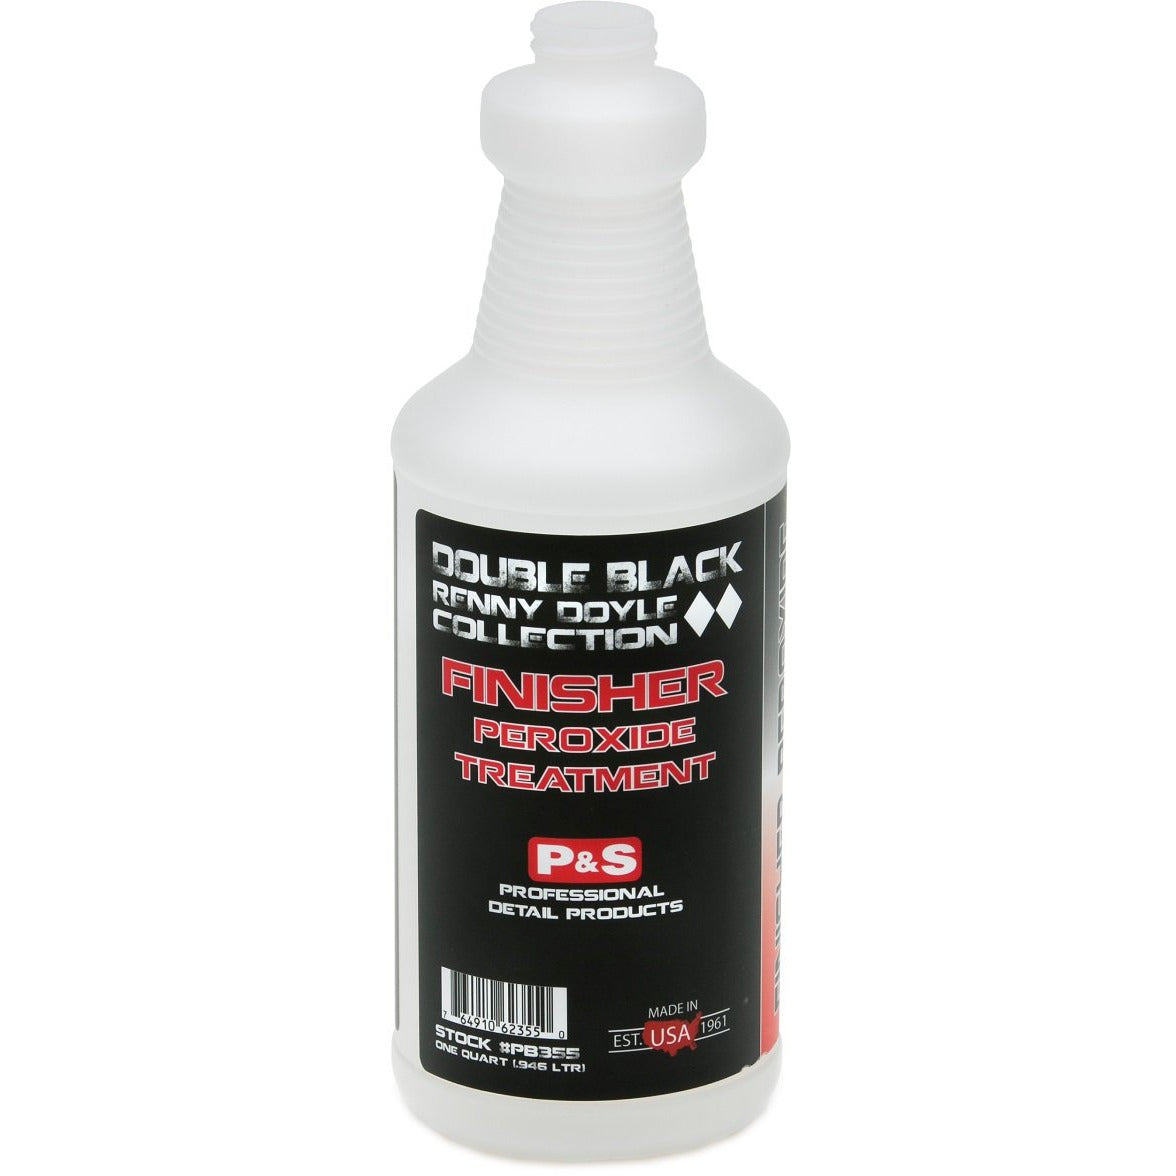 Car Detailing products | Car Detailing products on sale | Finisher Peroxide online |Safety Bottle